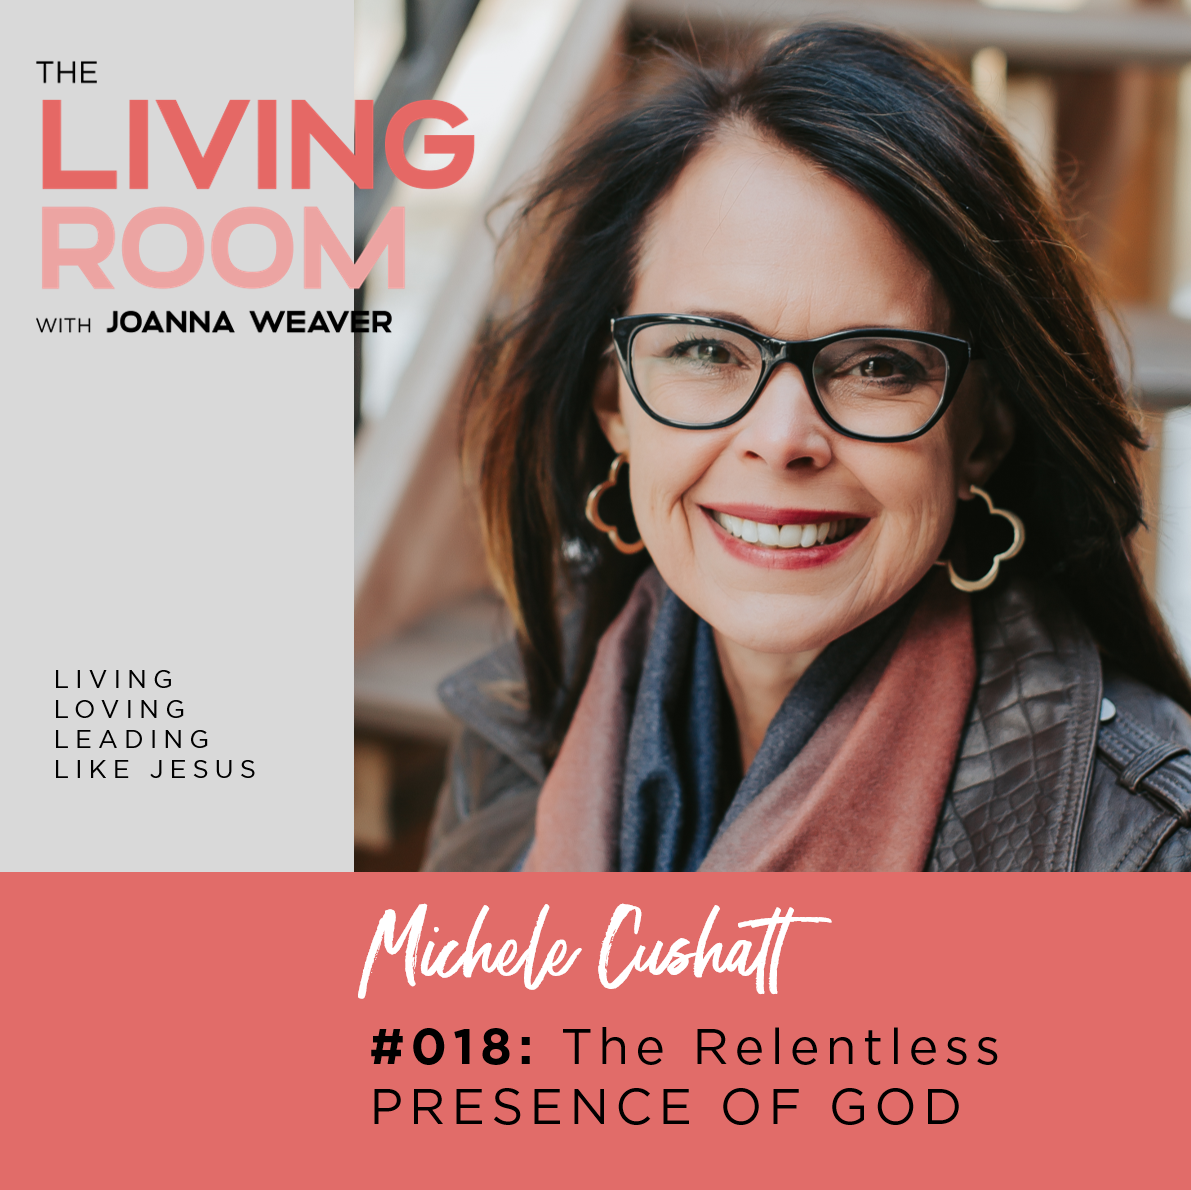 The Relentless Presence of God - Michele Cushatt TLR 018